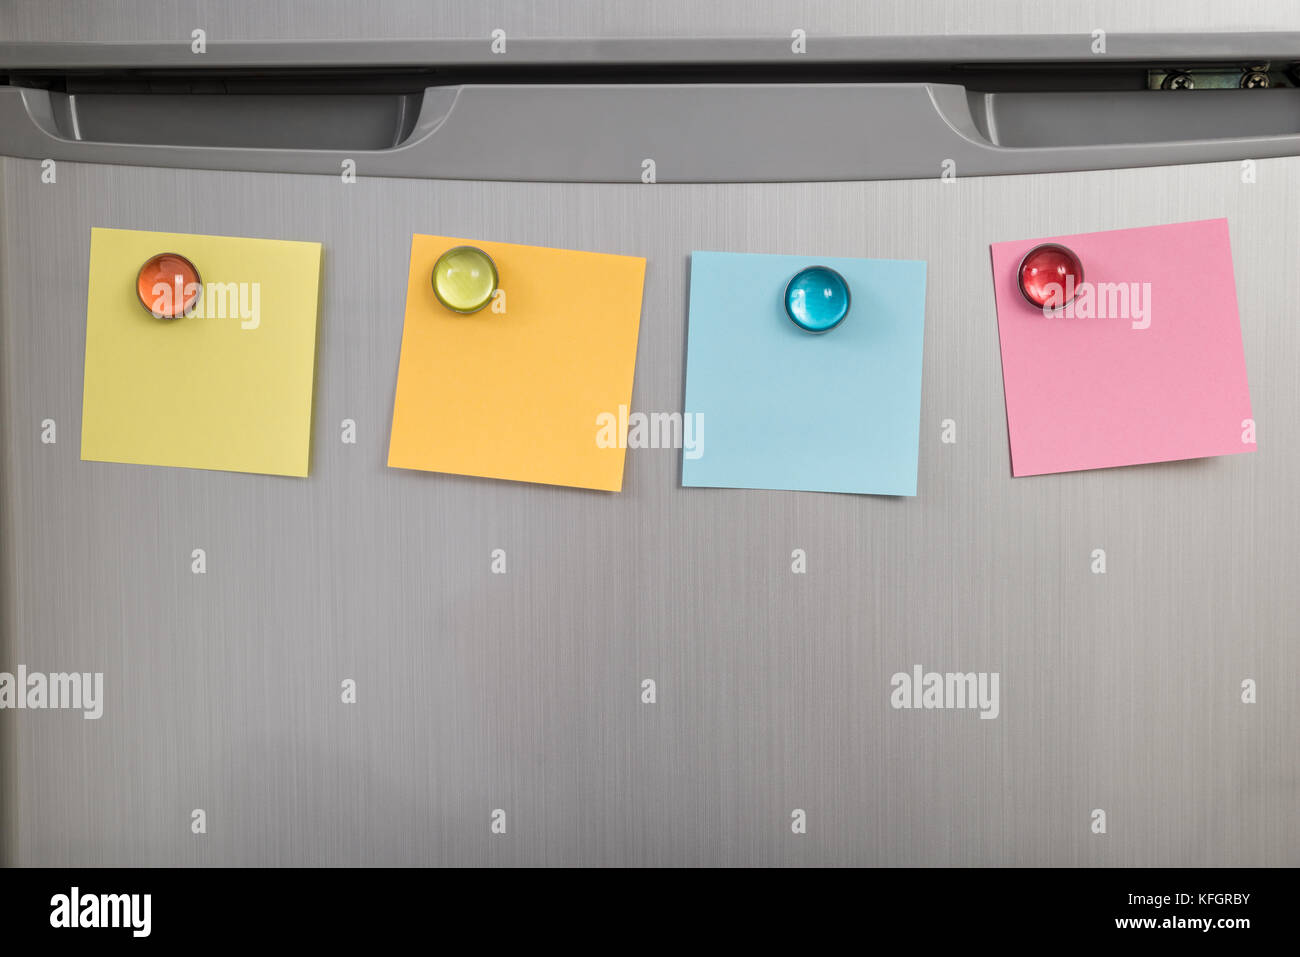 Gray Refrigerator Door With Colorful Notes Posted With Magnets - Stock Image & Fridge Post It Notes Stock Photos \u0026 Fridge Post It Notes Stock ...